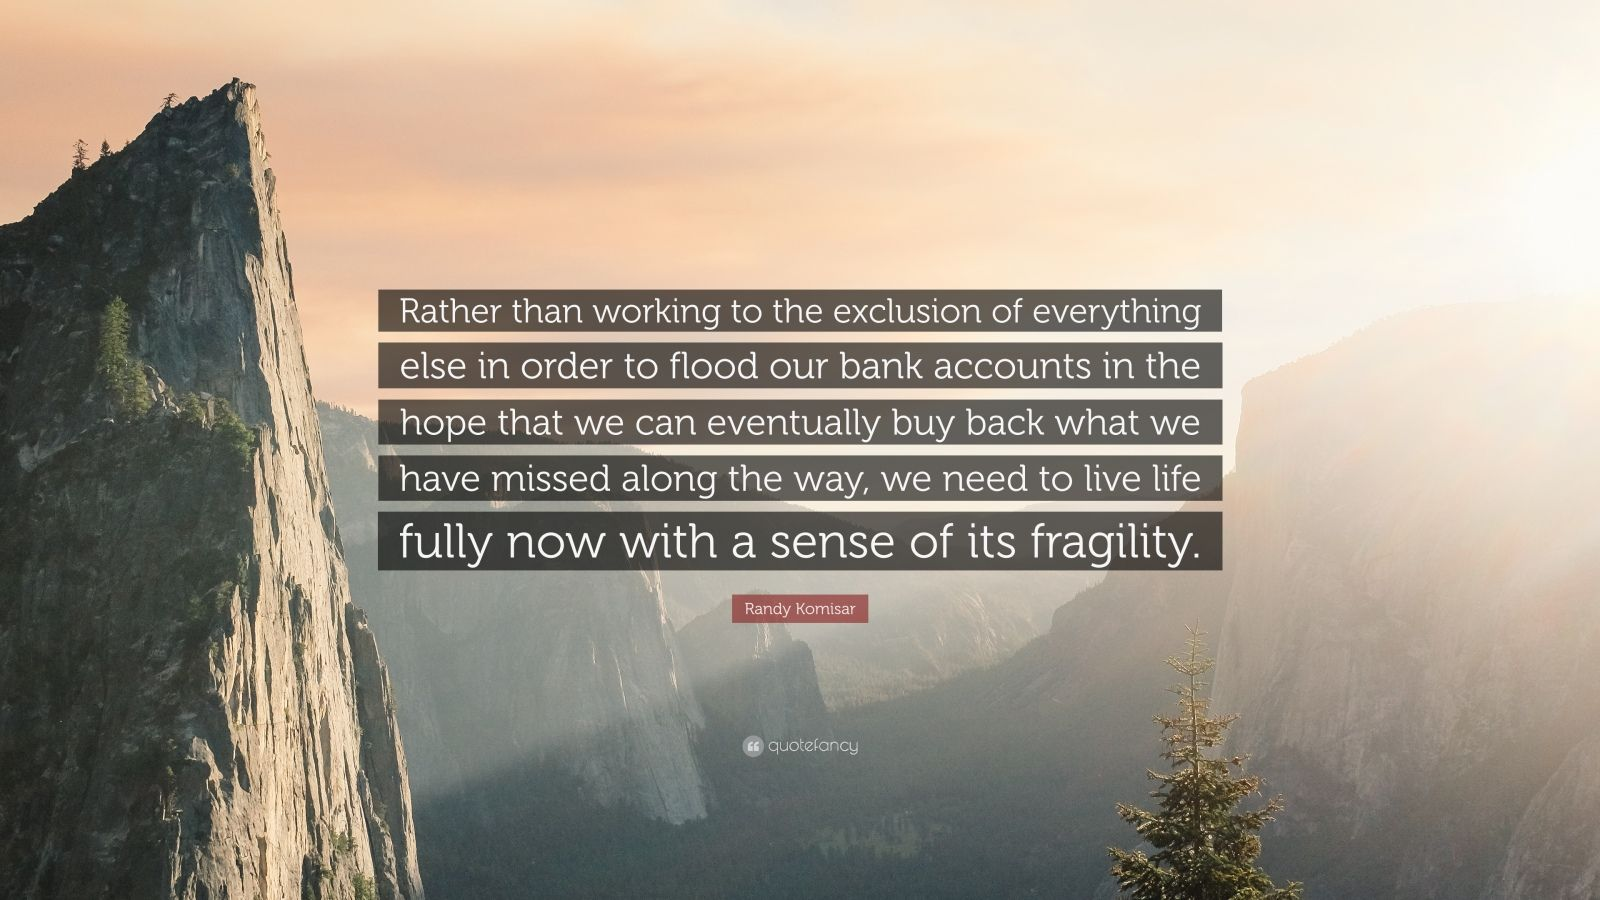 """Randy Komisar Quote: """"Rather than working to the exclusion of everything else in order to flood our bank accounts in the hope that we can eventually buy back what we have missed along the way, we need to live life fully now with a sense of its fragility."""""""